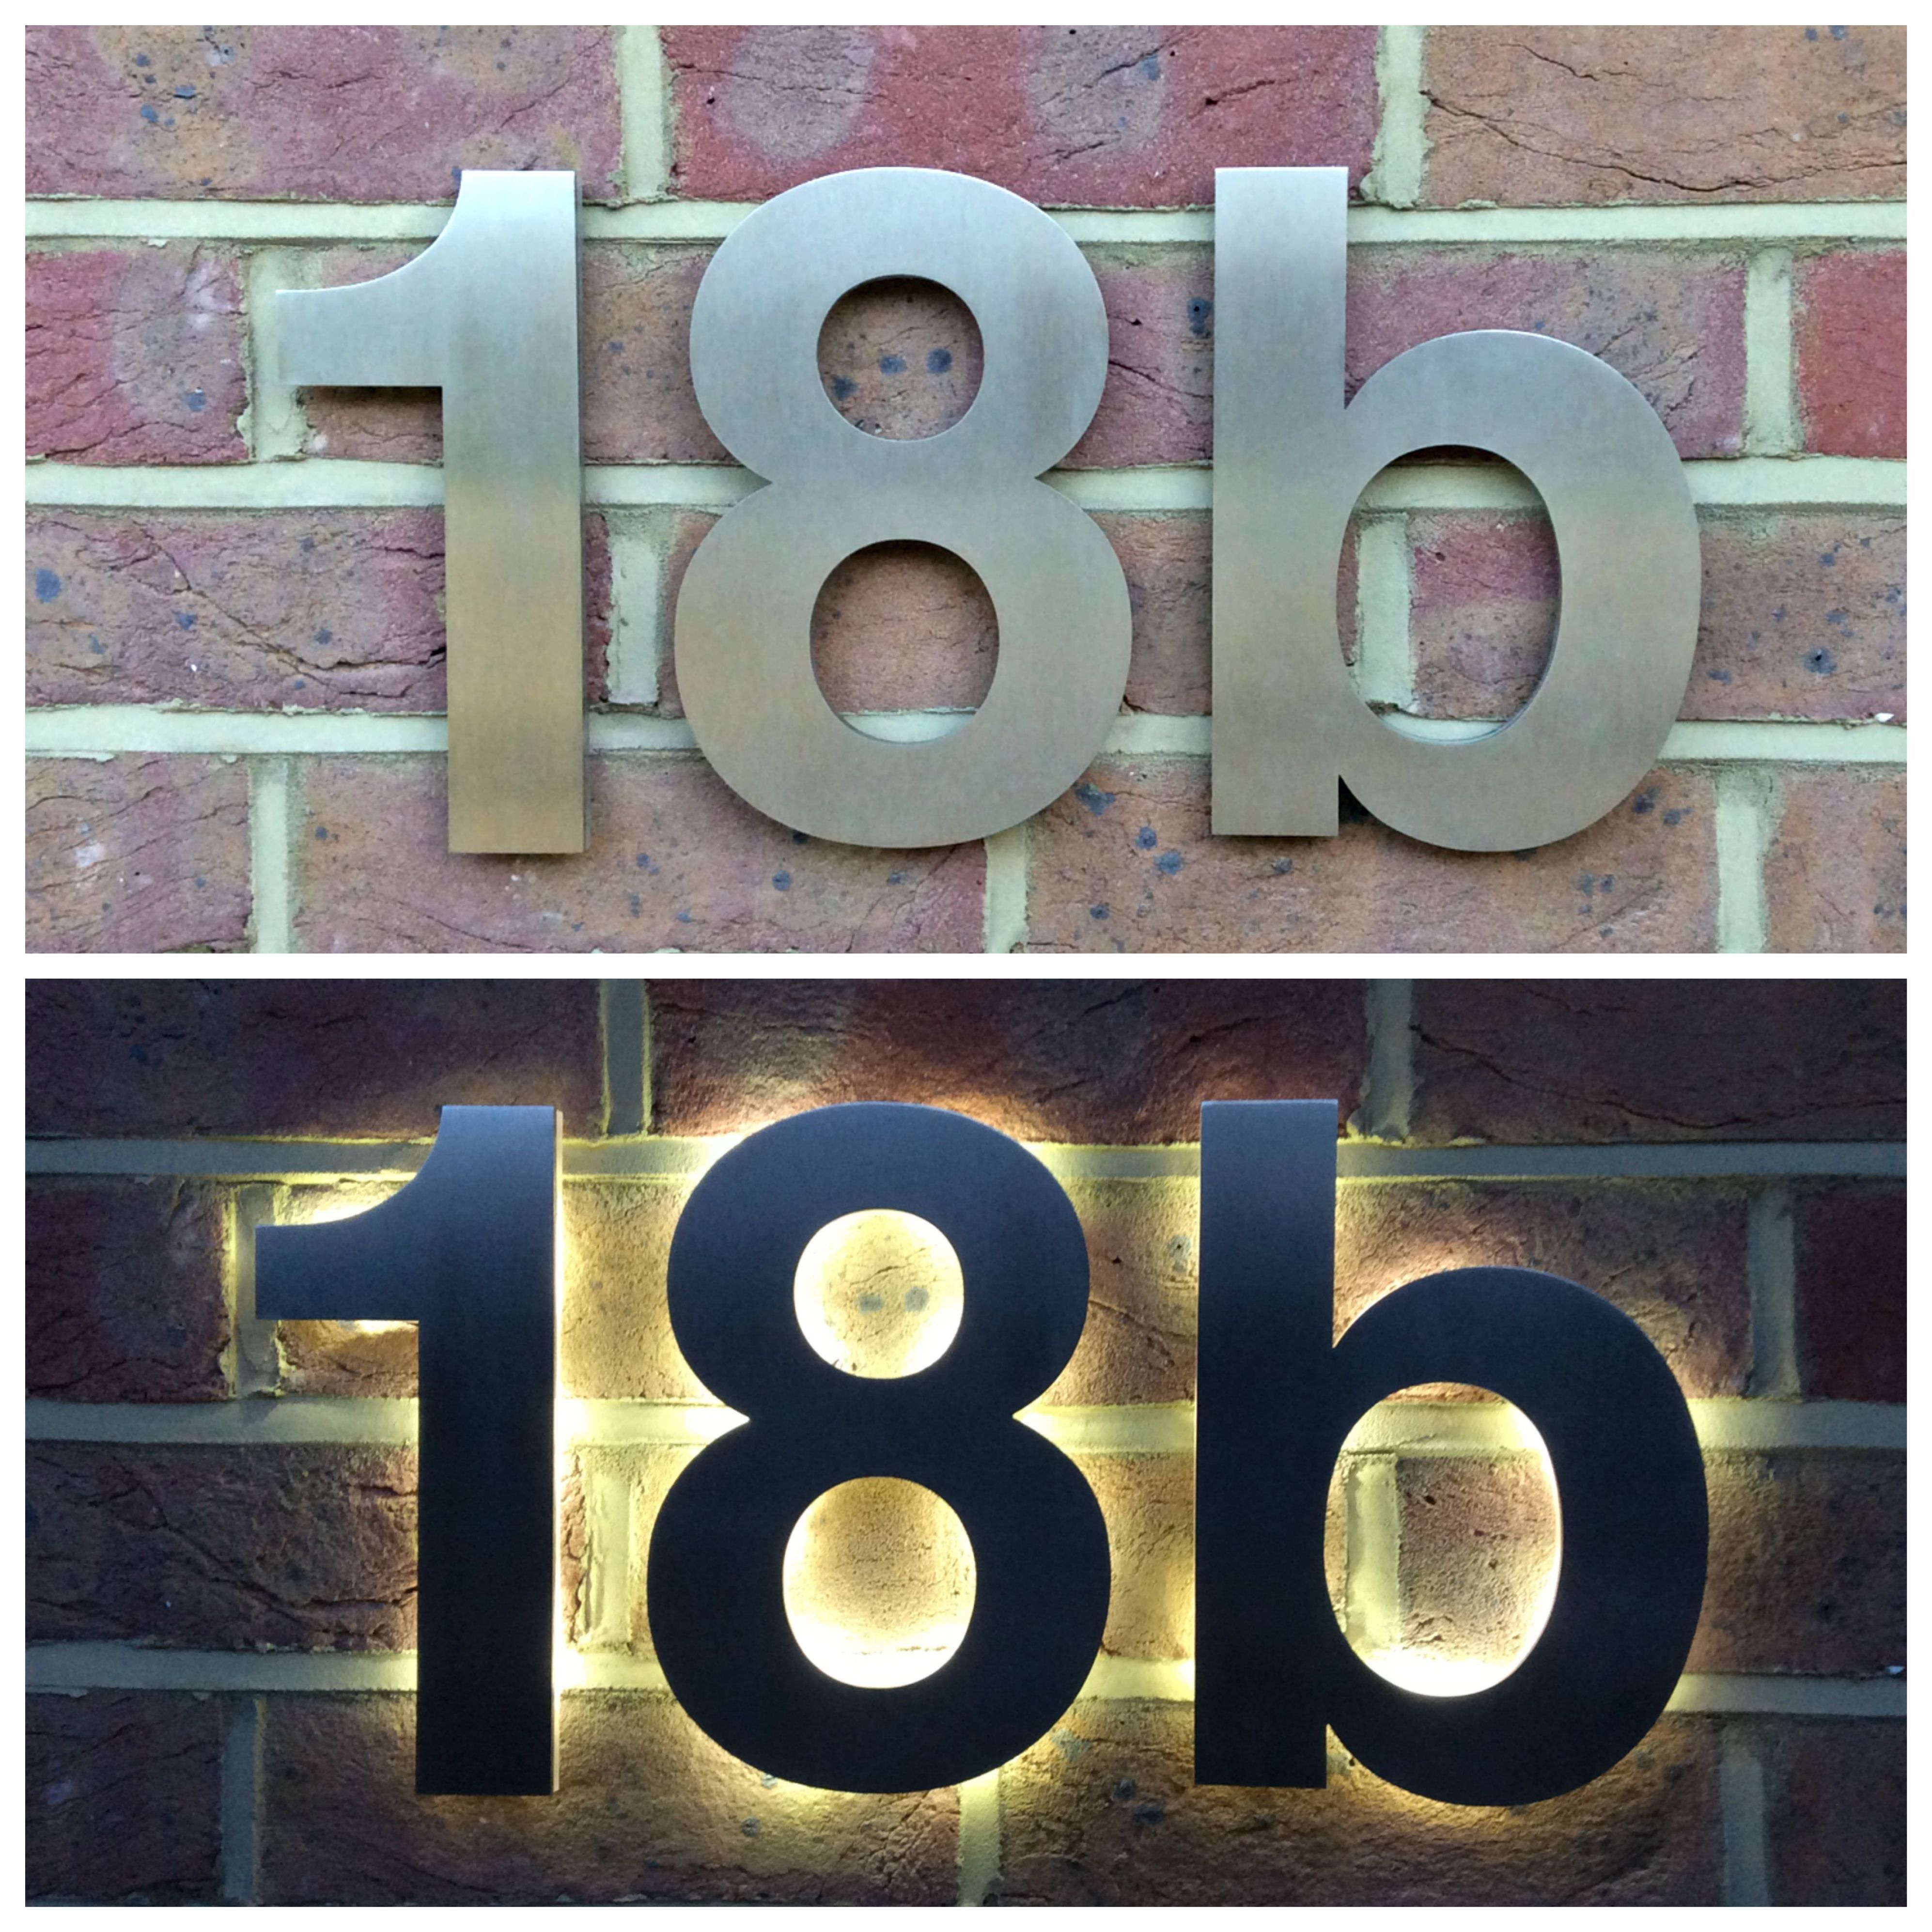 Day and night view of illuminated helvetica house numbers from day and night view of illuminated helvetica house numbers from housenumbers limited dailygadgetfo Image collections